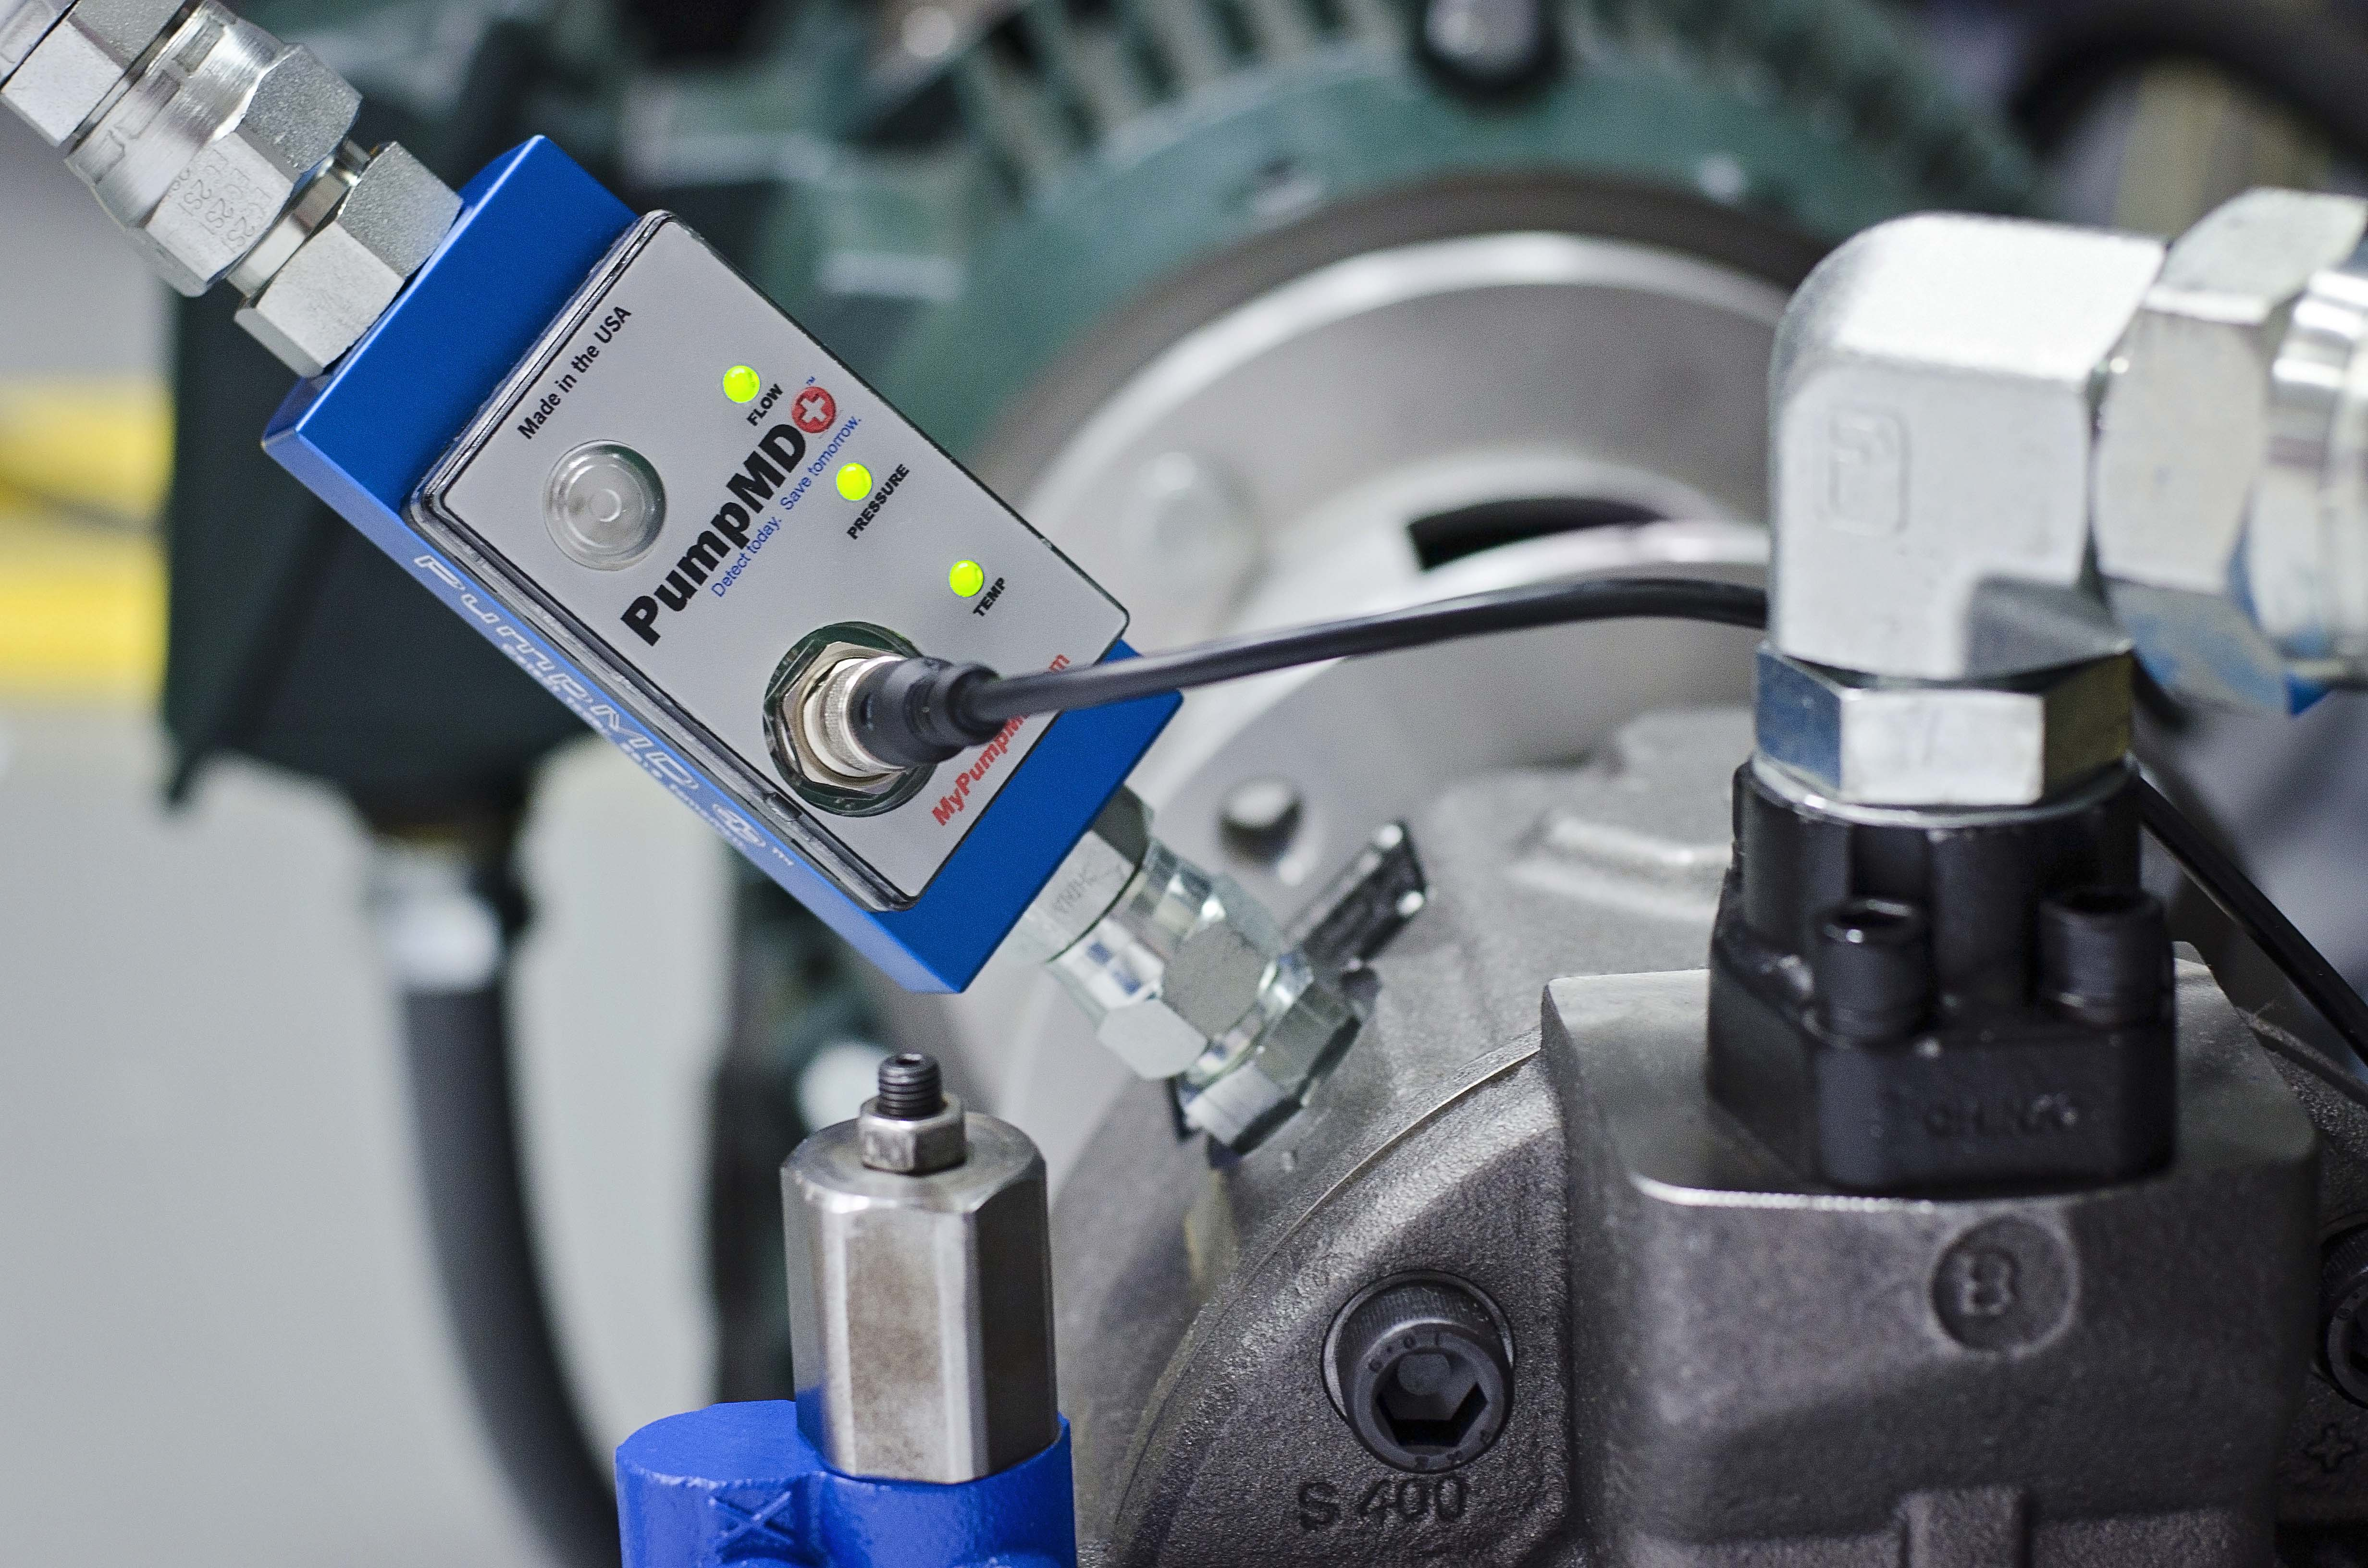 Hydrotech - Components & Systems for Advanced Manufacturing